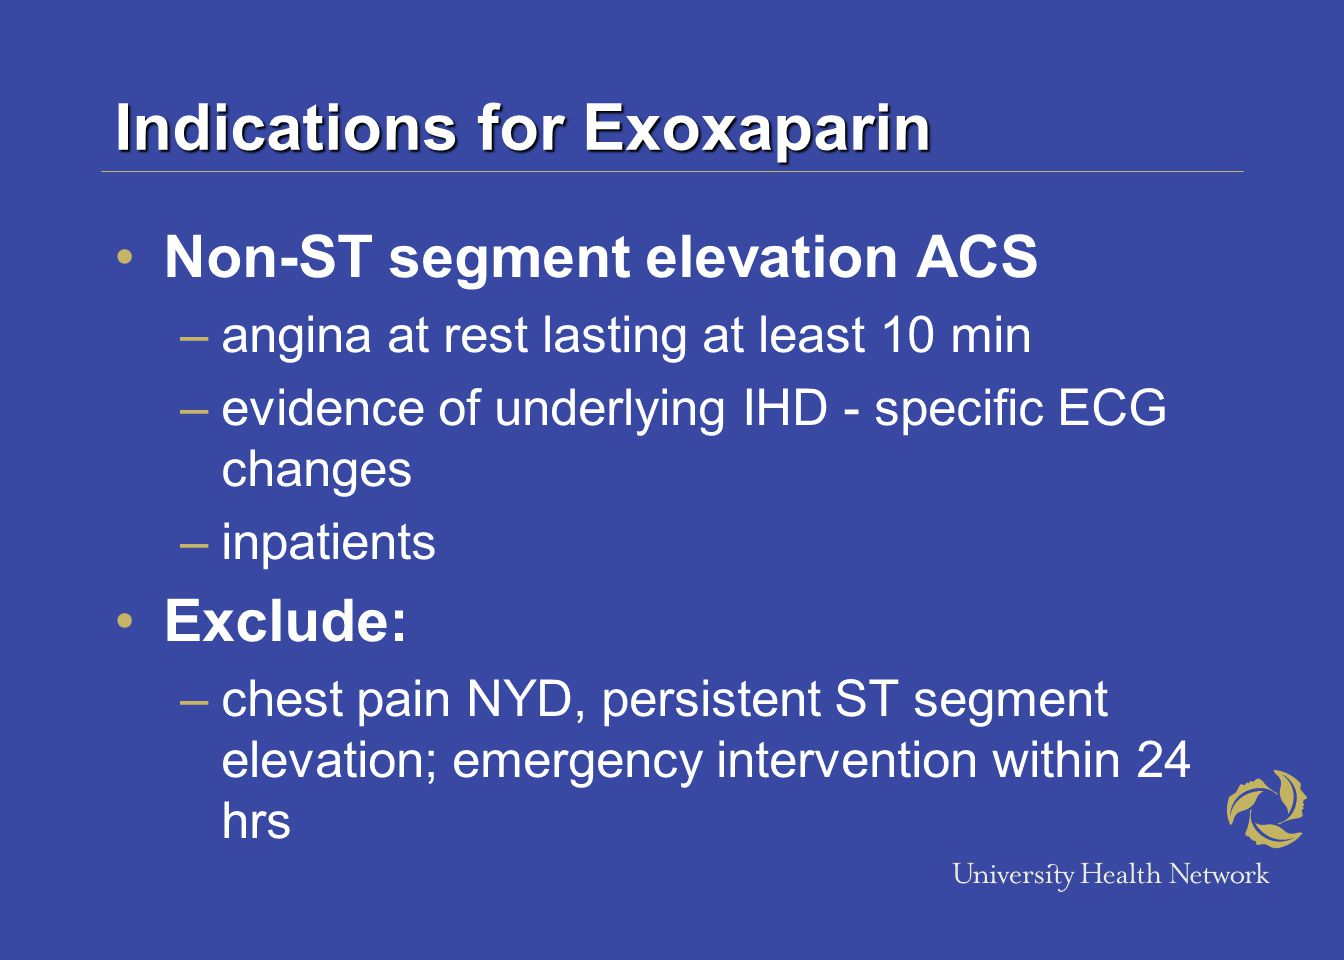 Indications for Exoxaparin Non-ST segment elevation ACS –angina at rest lasting at least 10 min –evidence of underlying IHD - specific ECG changes –inpatients Exclude: –chest pain NYD, persistent ST segment elevation; emergency intervention within 24 hrs